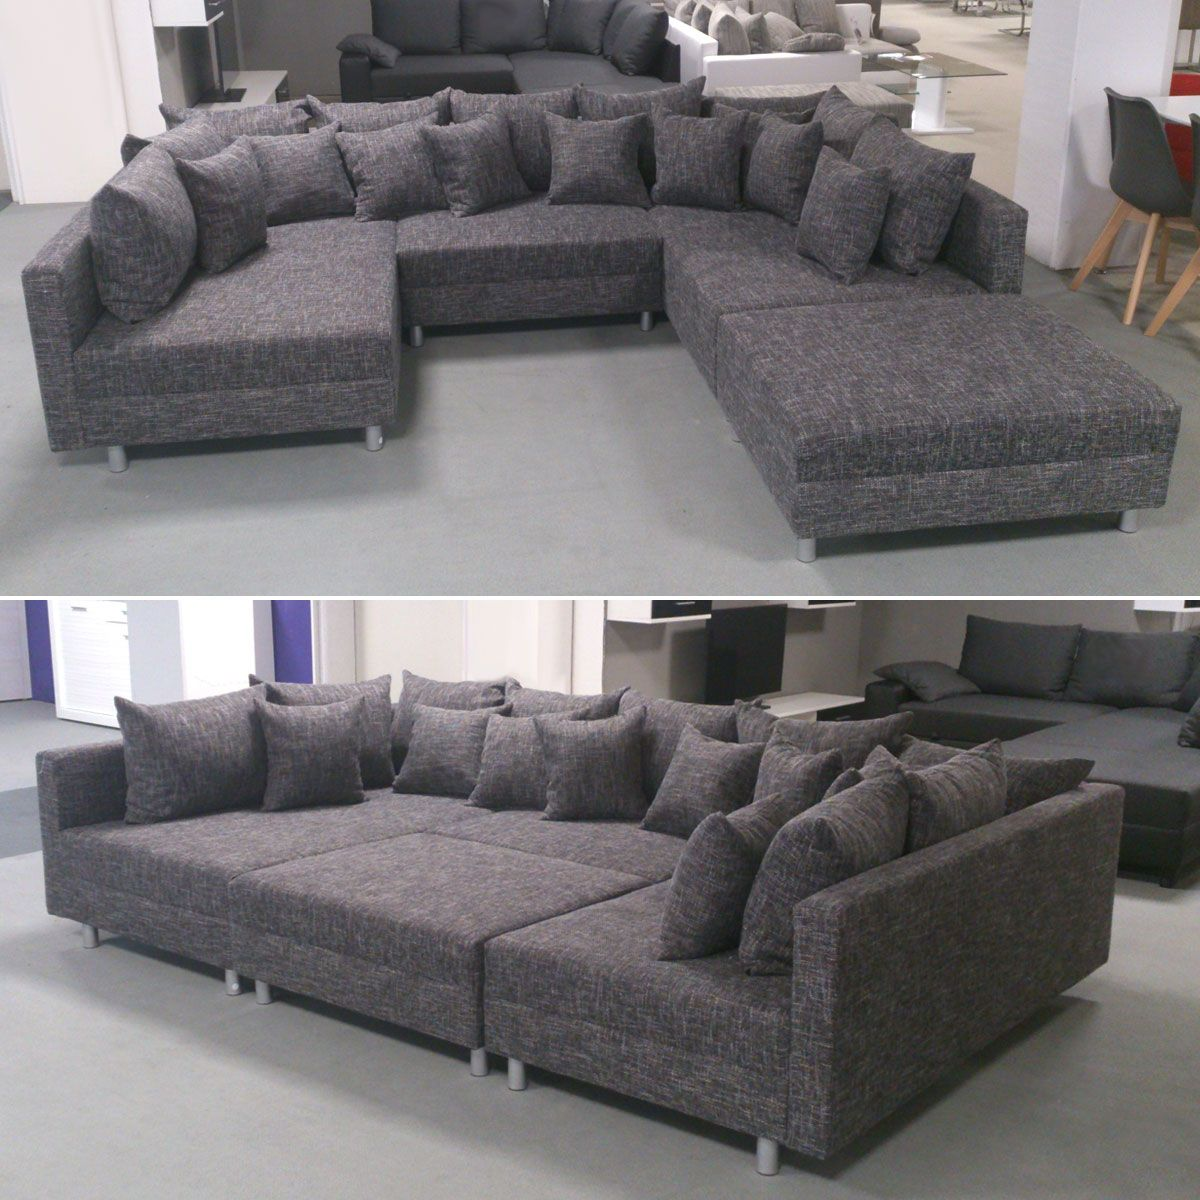 Ecksofa Xxl Ottomane Tolle Ecksofa Xxl Room Furniture In 2019 Couch Sofa Sofa Bed